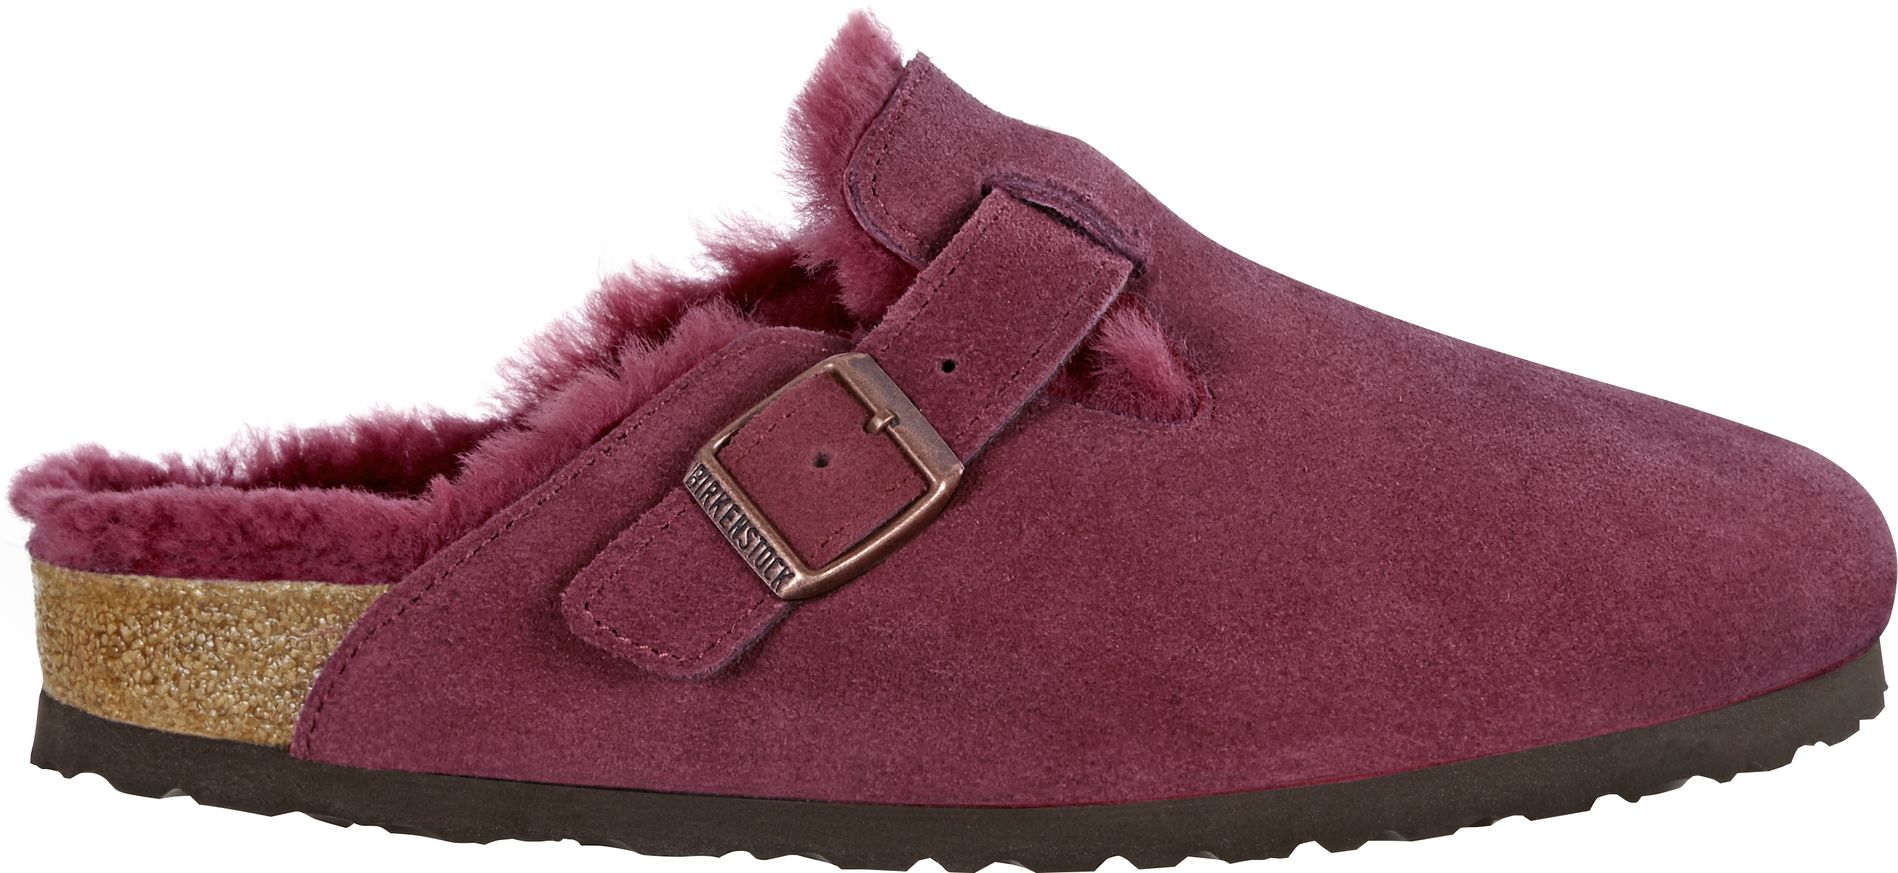 brand new 8f48a 7bdd8 Birkenstock Boston Fell Burgundy Veloursleder